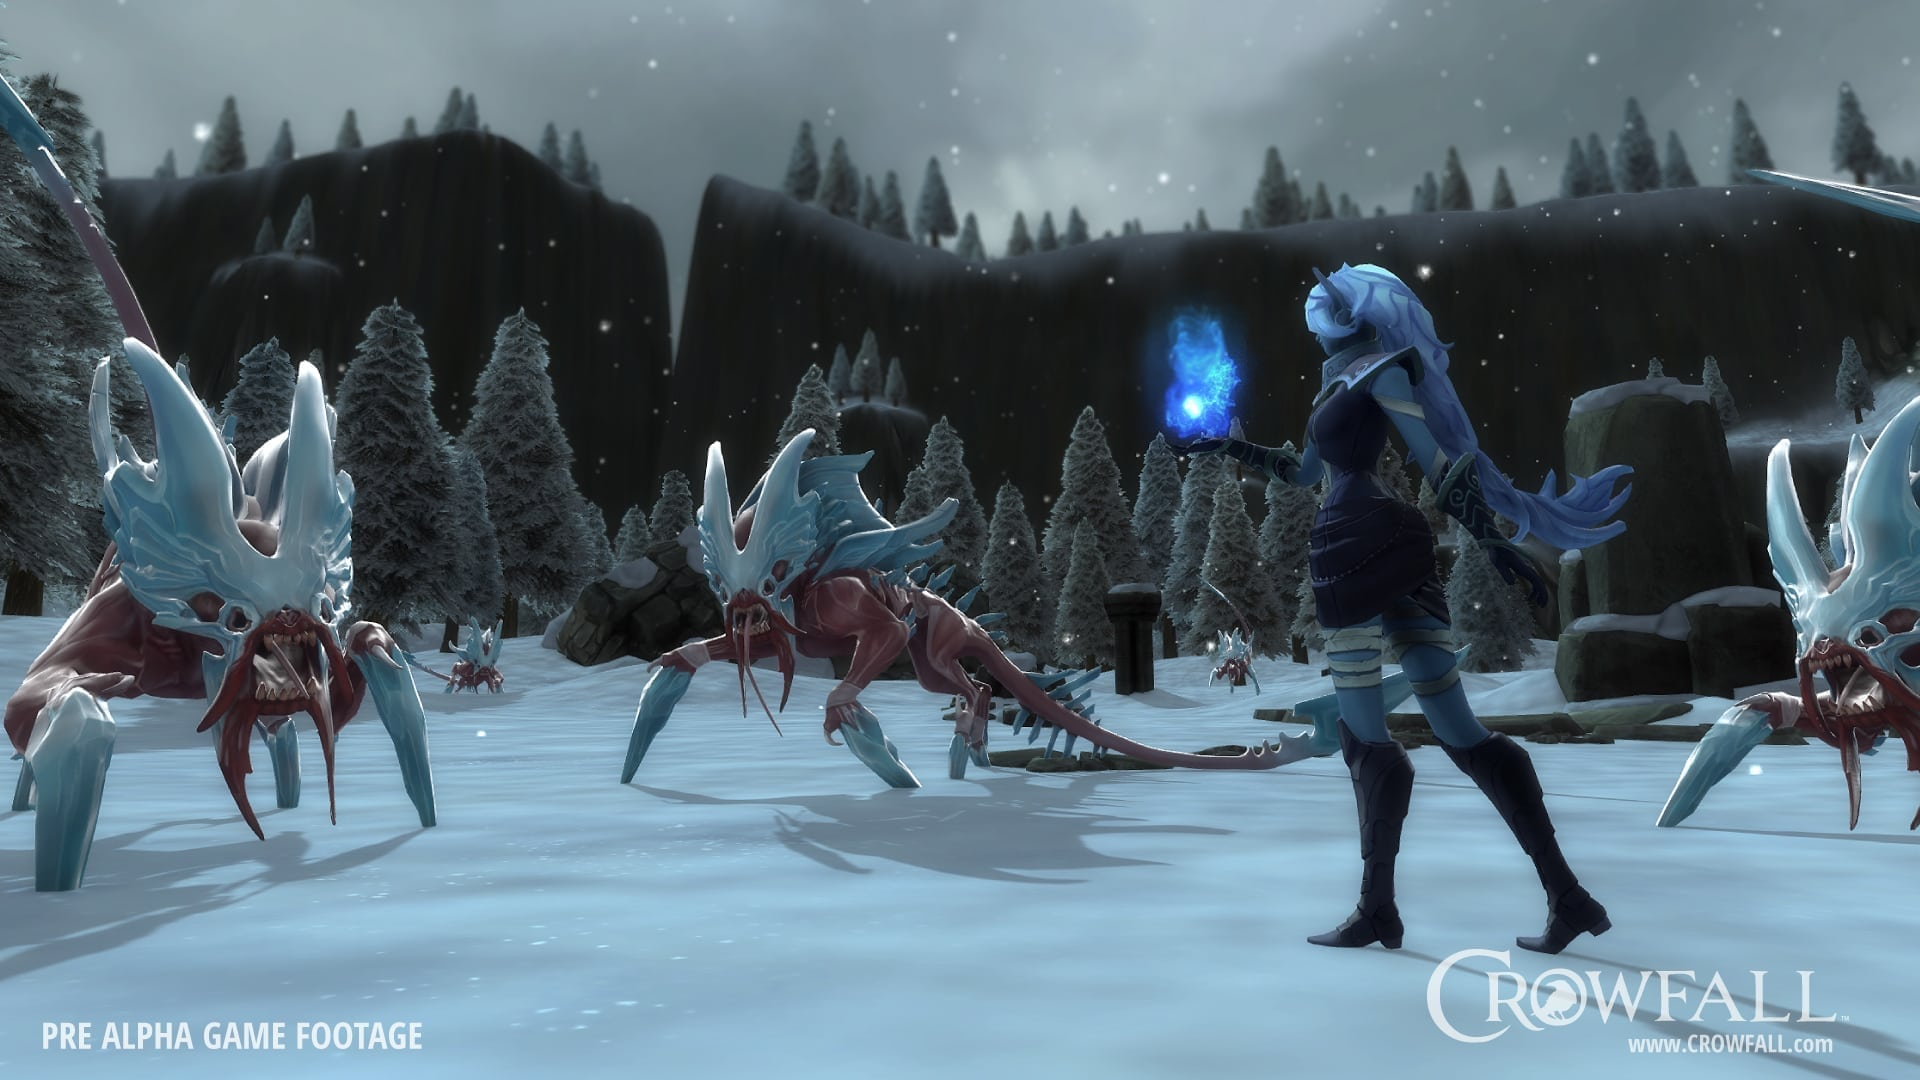 Crowfall - Gameplay screenshot 1